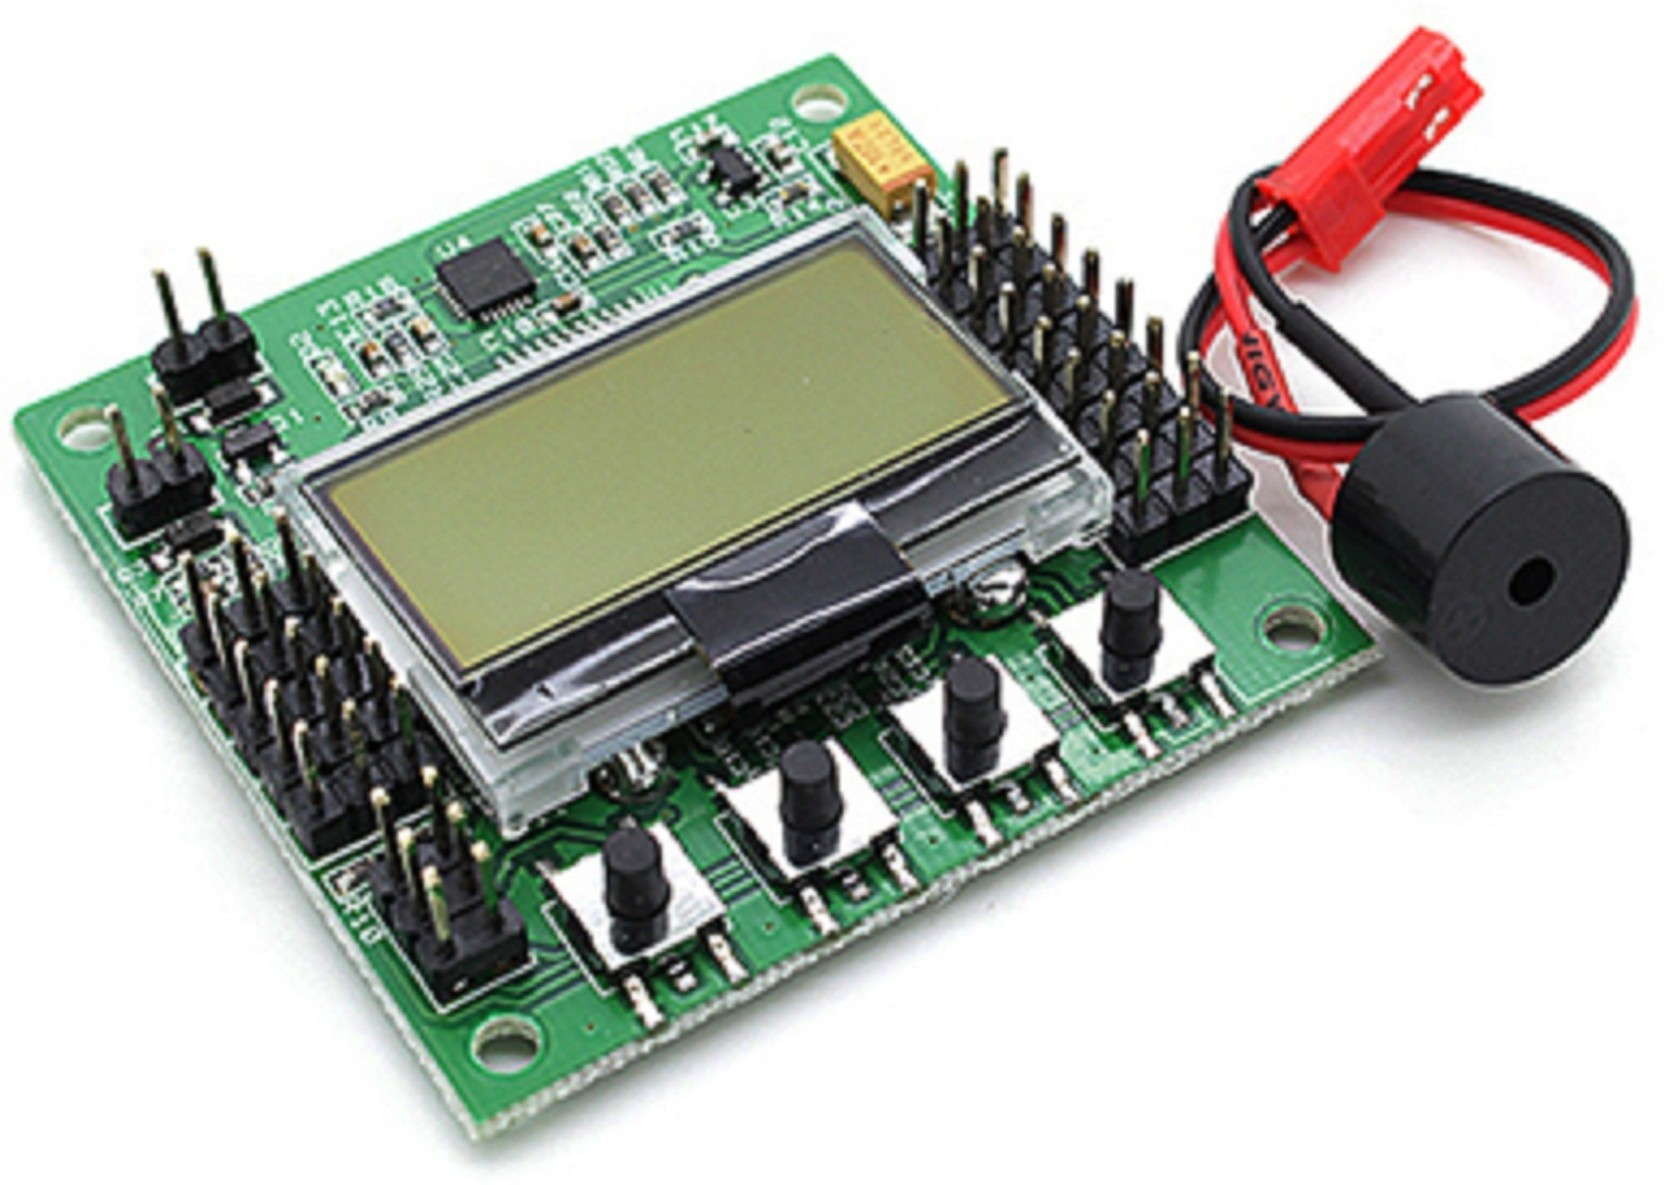 Sunrobotics Kk215 Multi Rotor Lcd Flight Control Board Price In Diy Make A Circuit Fly With This Cute Tiny Quadcopter Kit On Offer